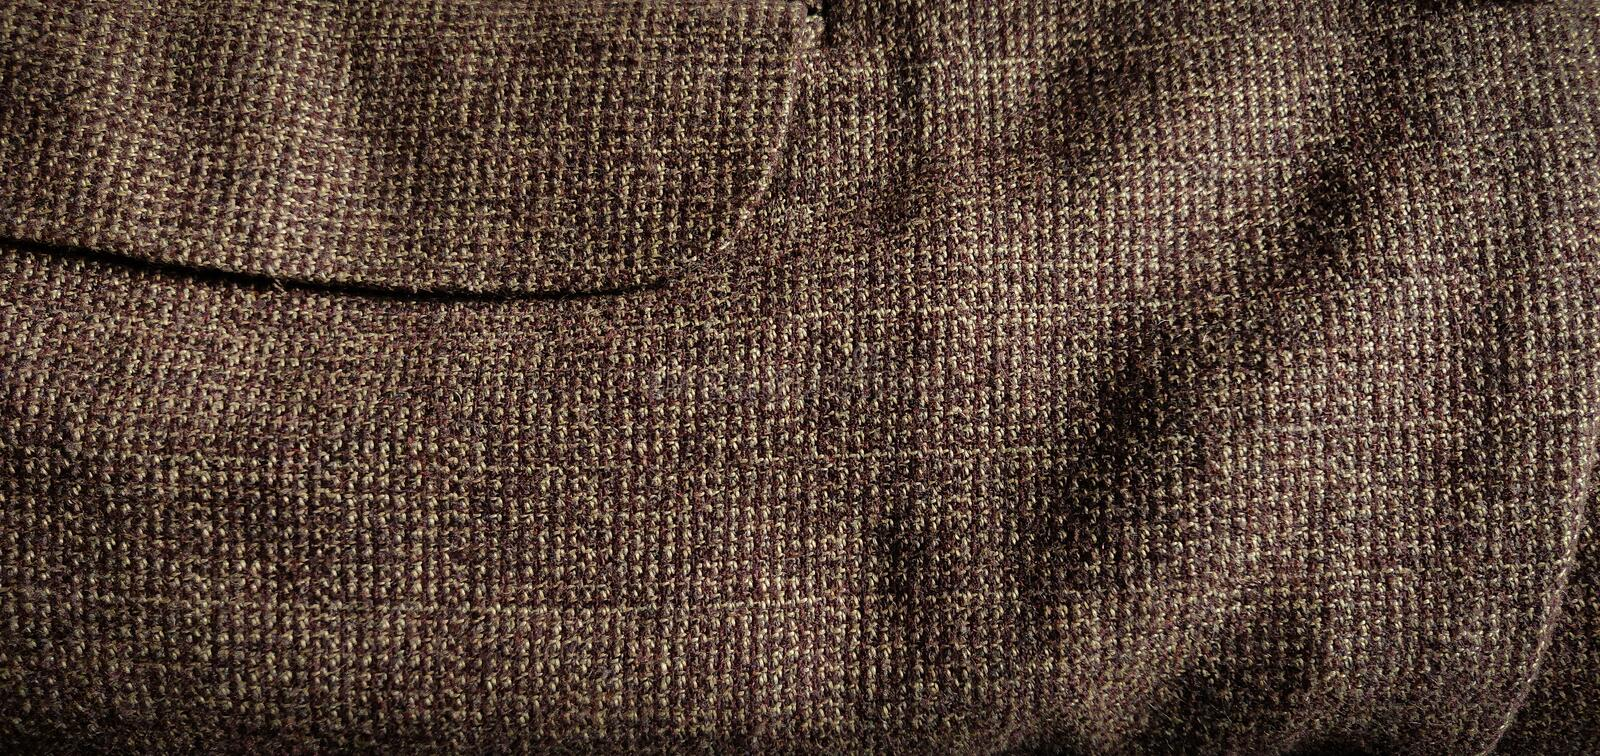 Brown Woolen Coat for men close up royalty free stock photography